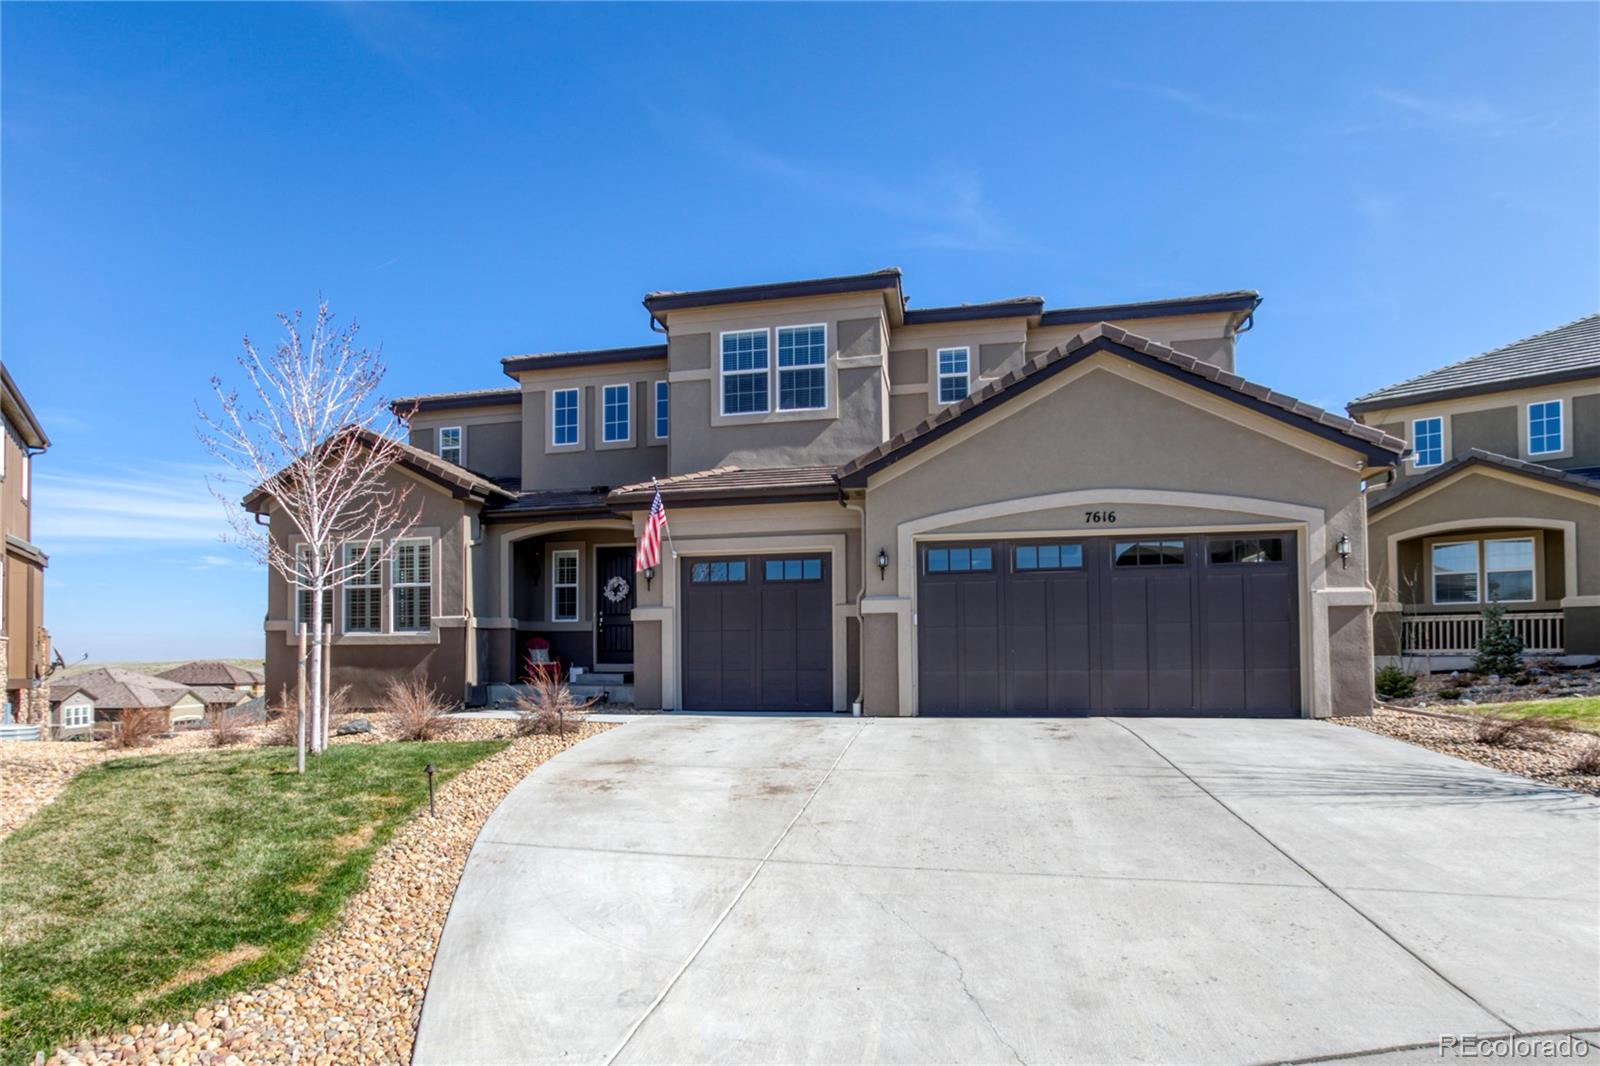 7616 S Valleyhead Court Property Photo - Aurora, CO real estate listing